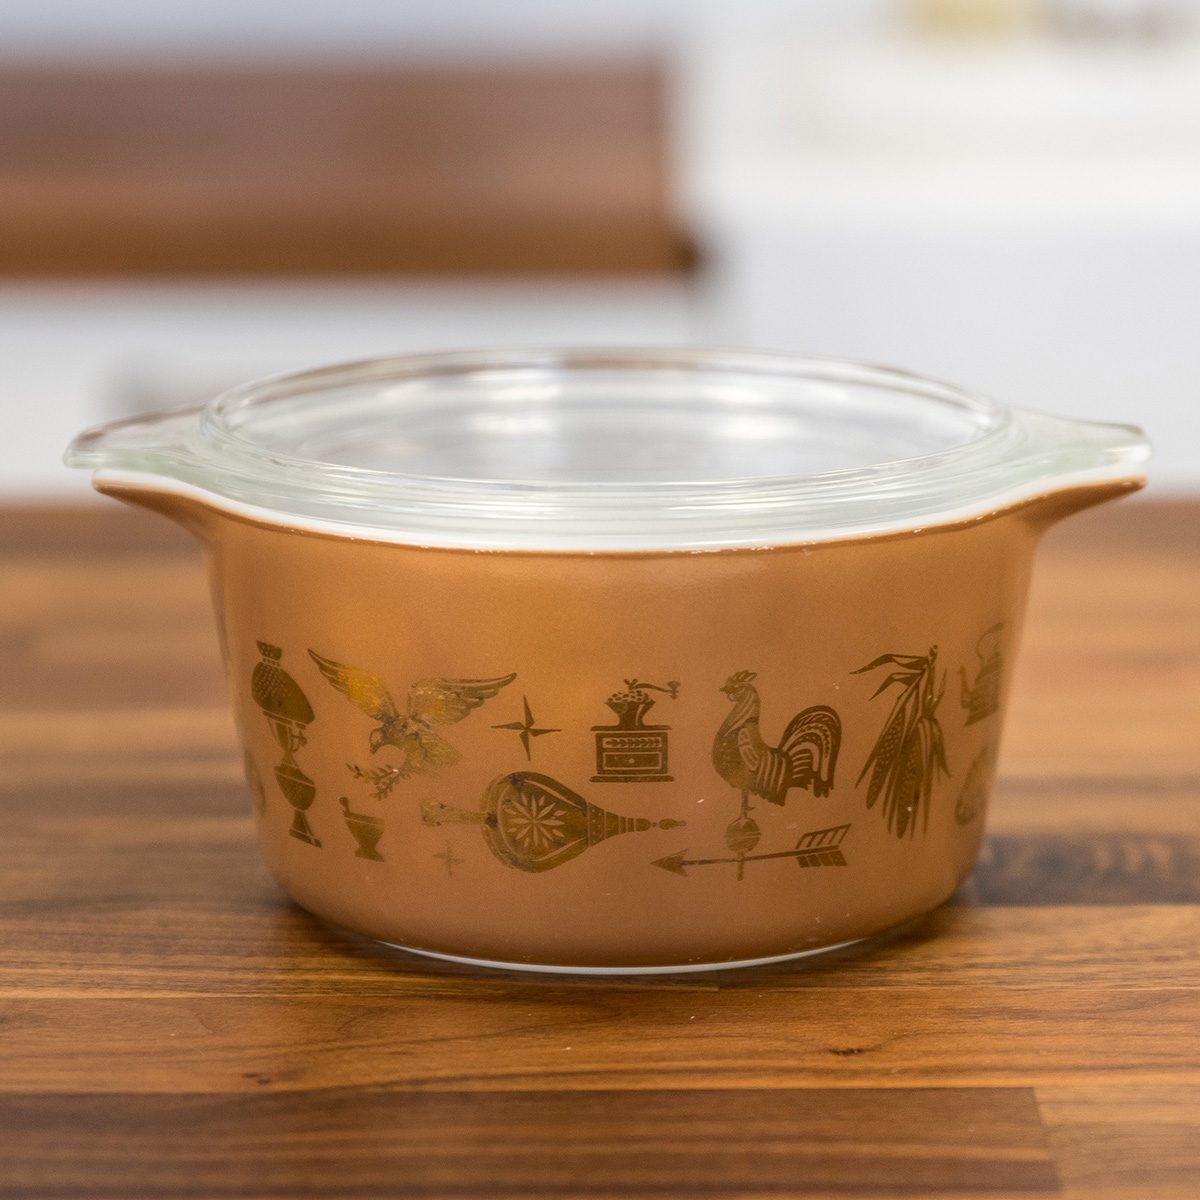 Vintage Pyrex dish in Early American